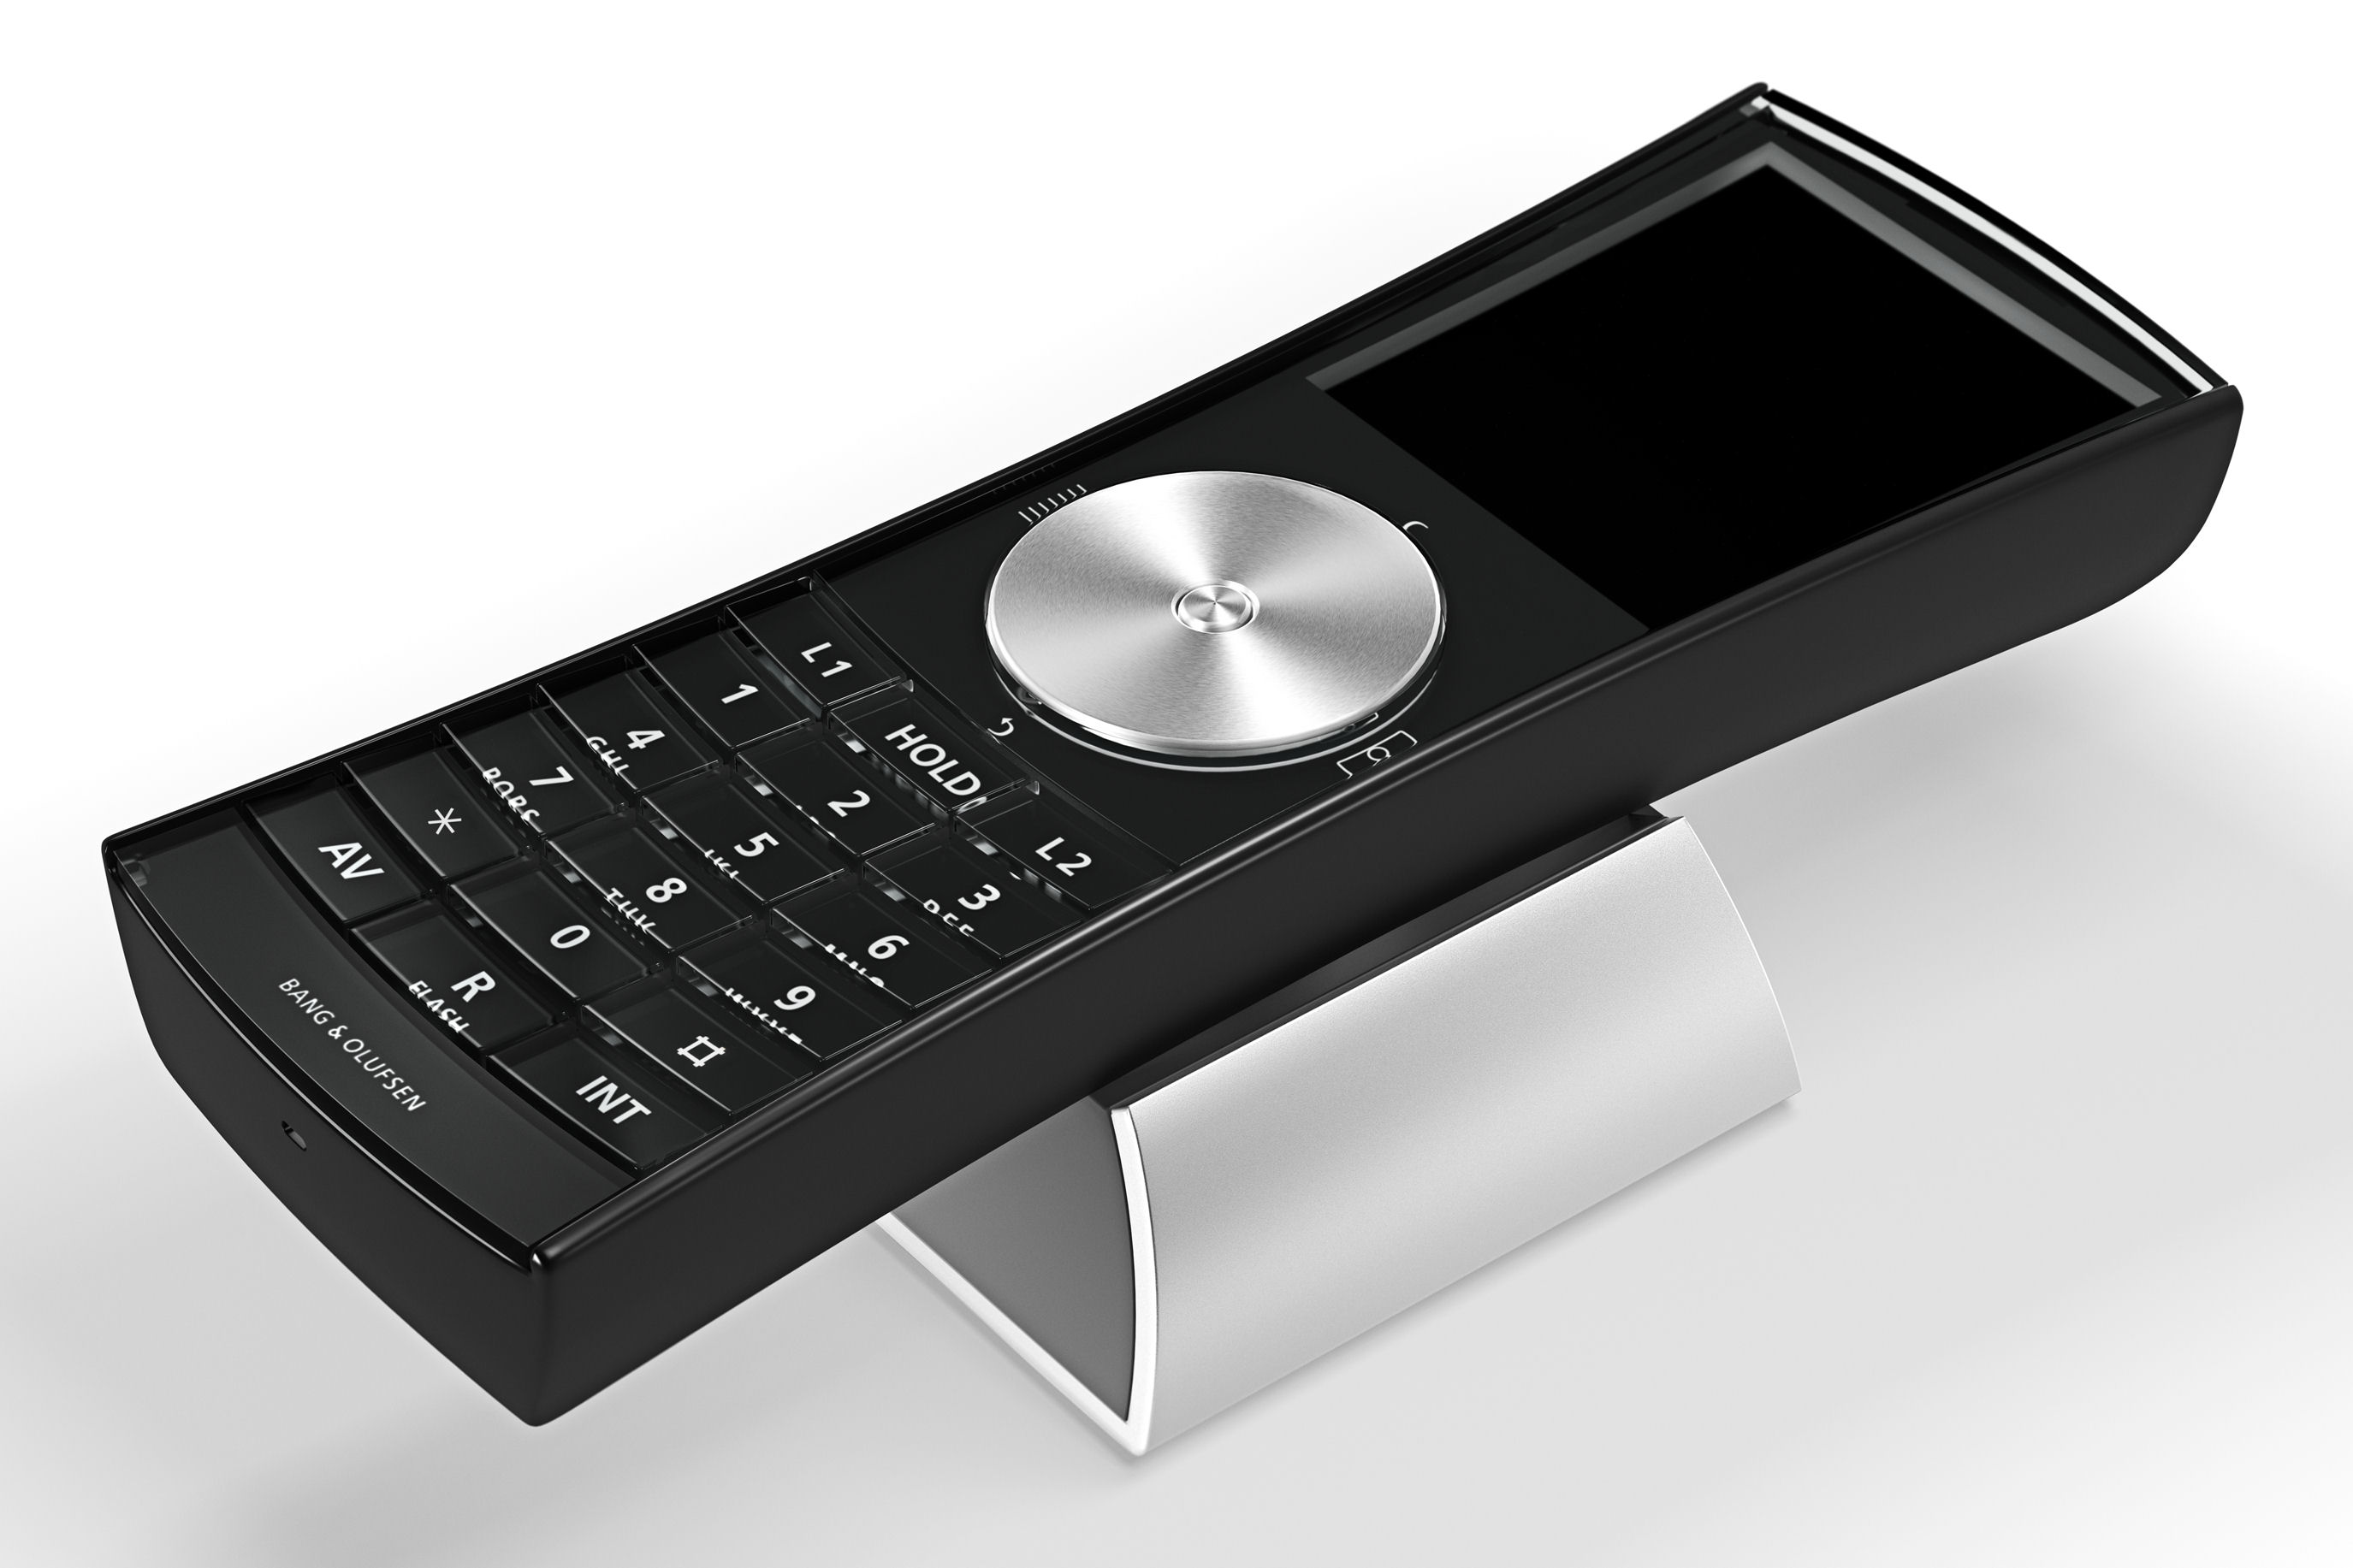 bang olufsen beocom 5 home phone also does voip. Black Bedroom Furniture Sets. Home Design Ideas